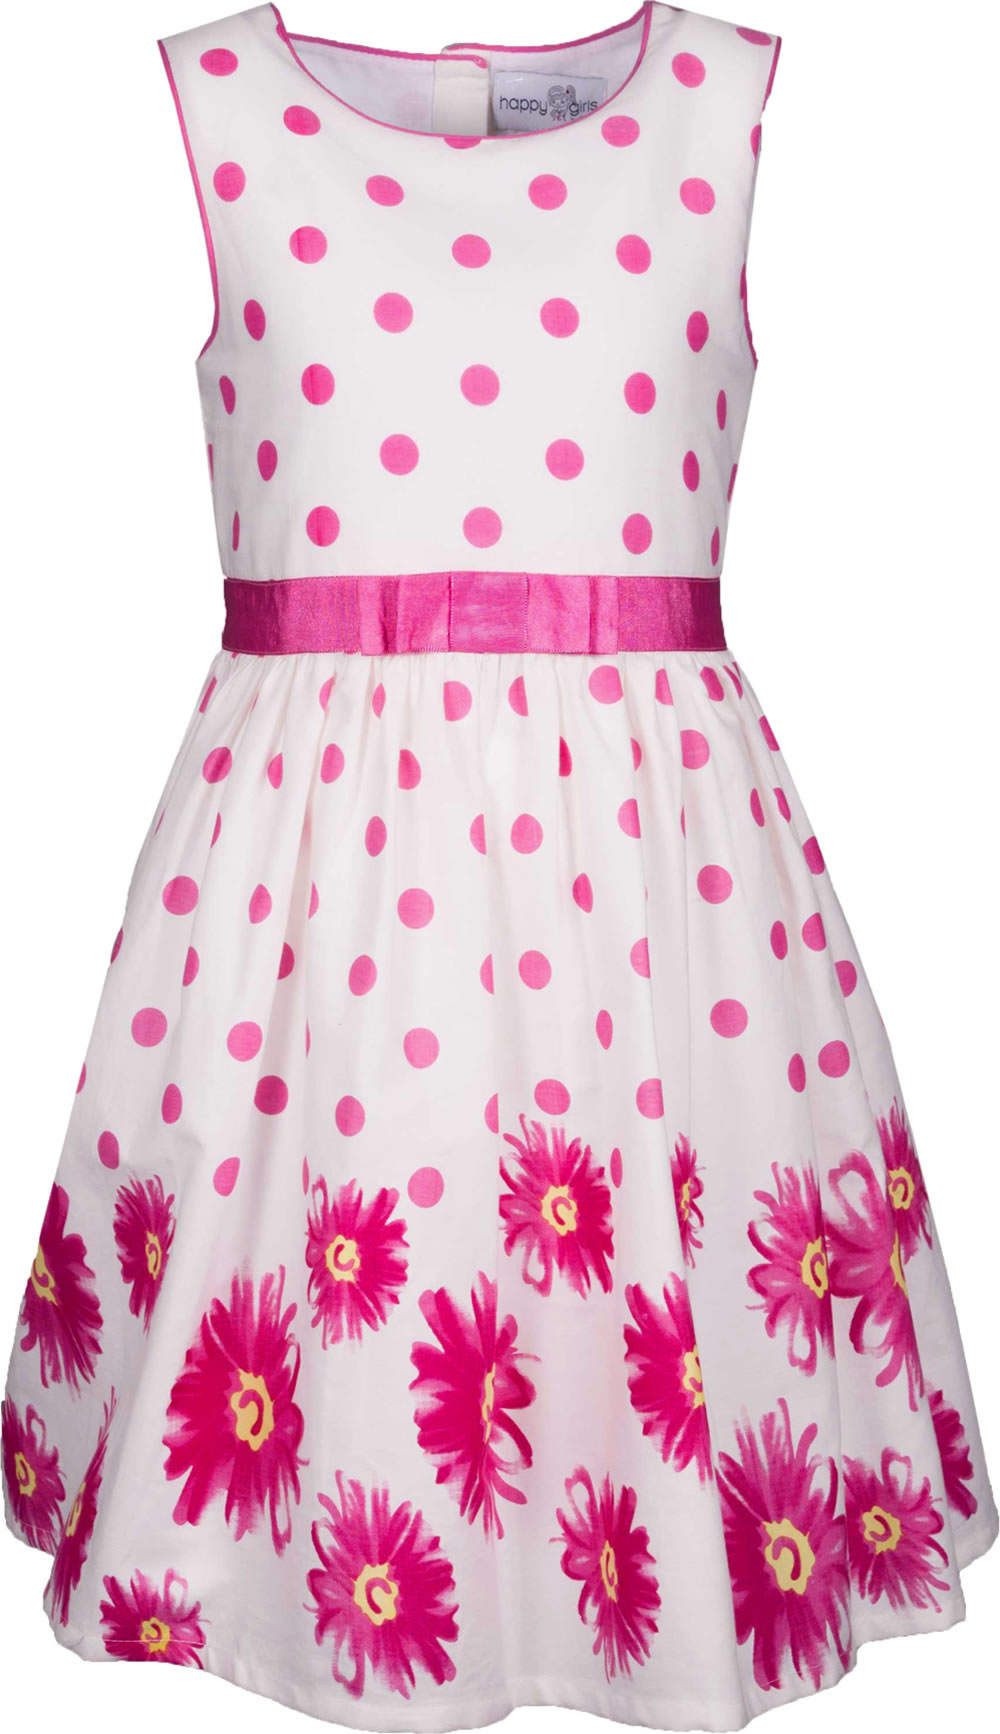 Happy Girls Sommer-Kleid BLUMEN pink 981302-36 bei Papiton ...